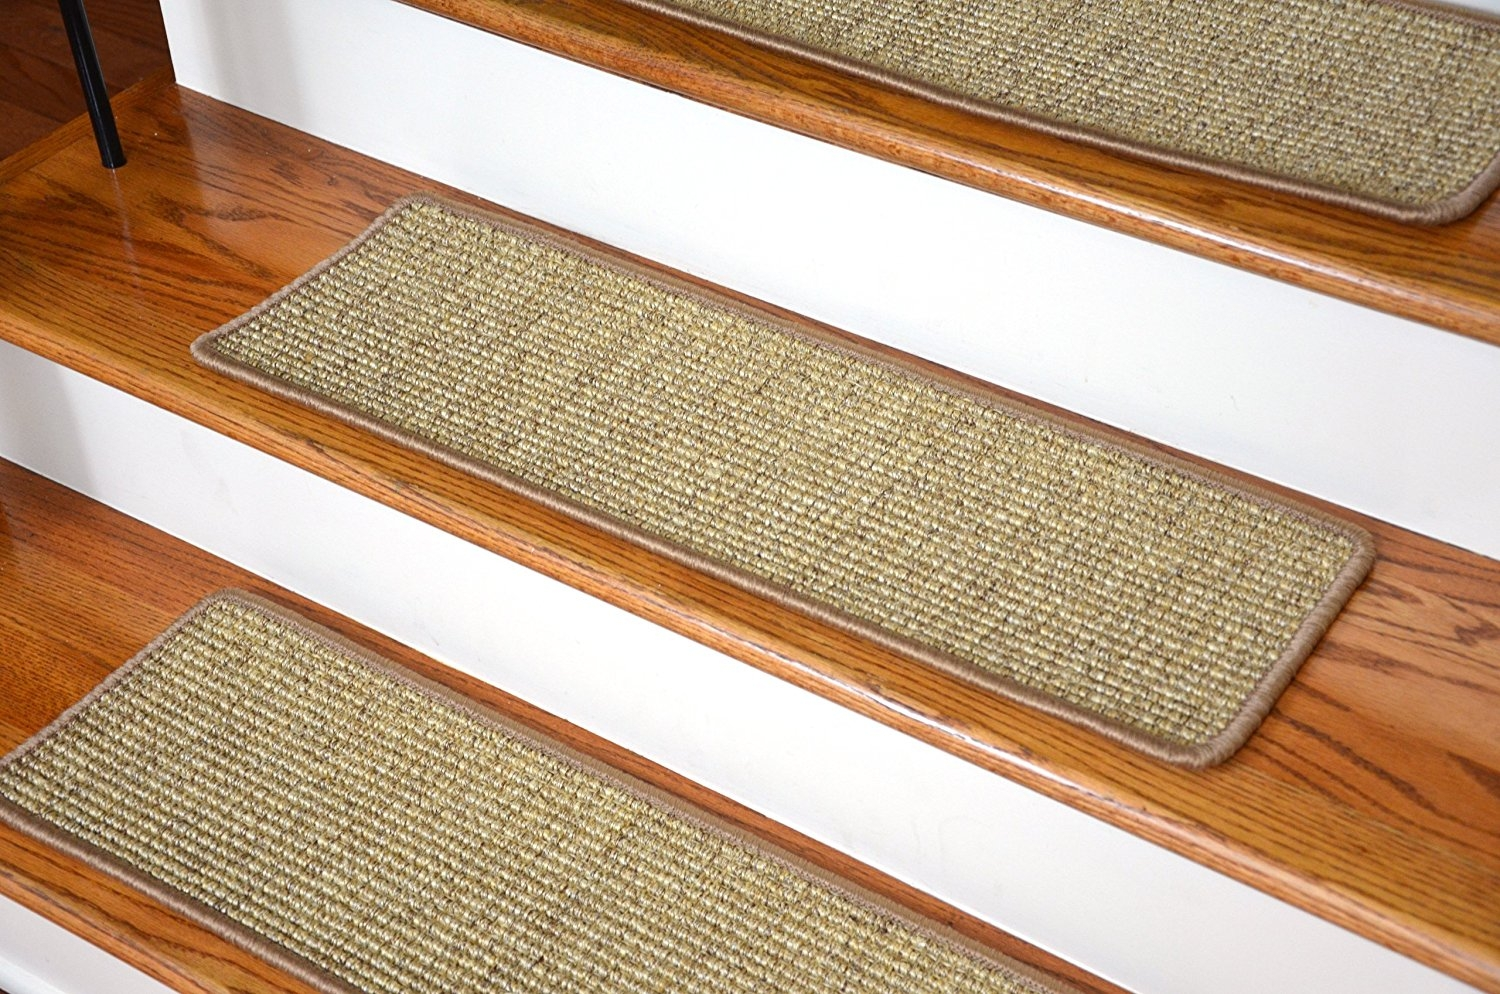 Amazon Dean Attachable Non Skid Sisal Carpet Stair Treads For NonSlip Stair Tread Rugs (Image 2 of 15)